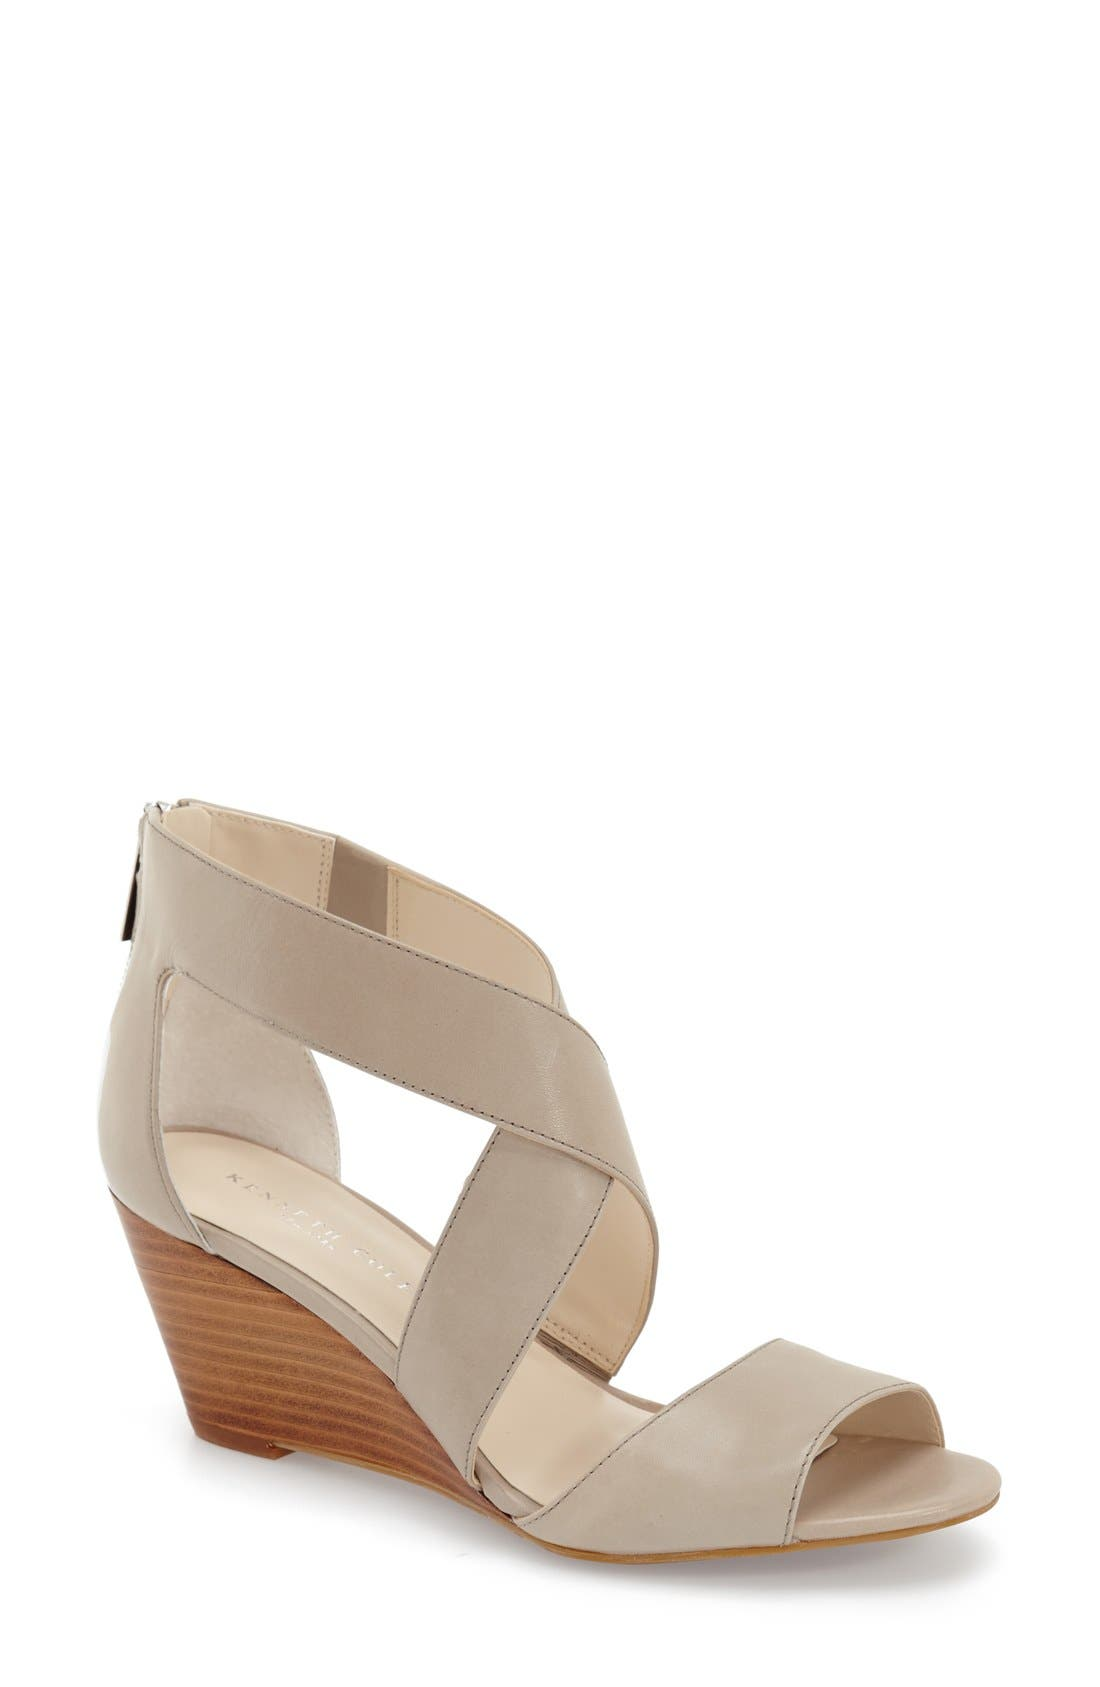 Main Image - Kenneth Cole New York 'Drina' Wedge Sandal (Women)